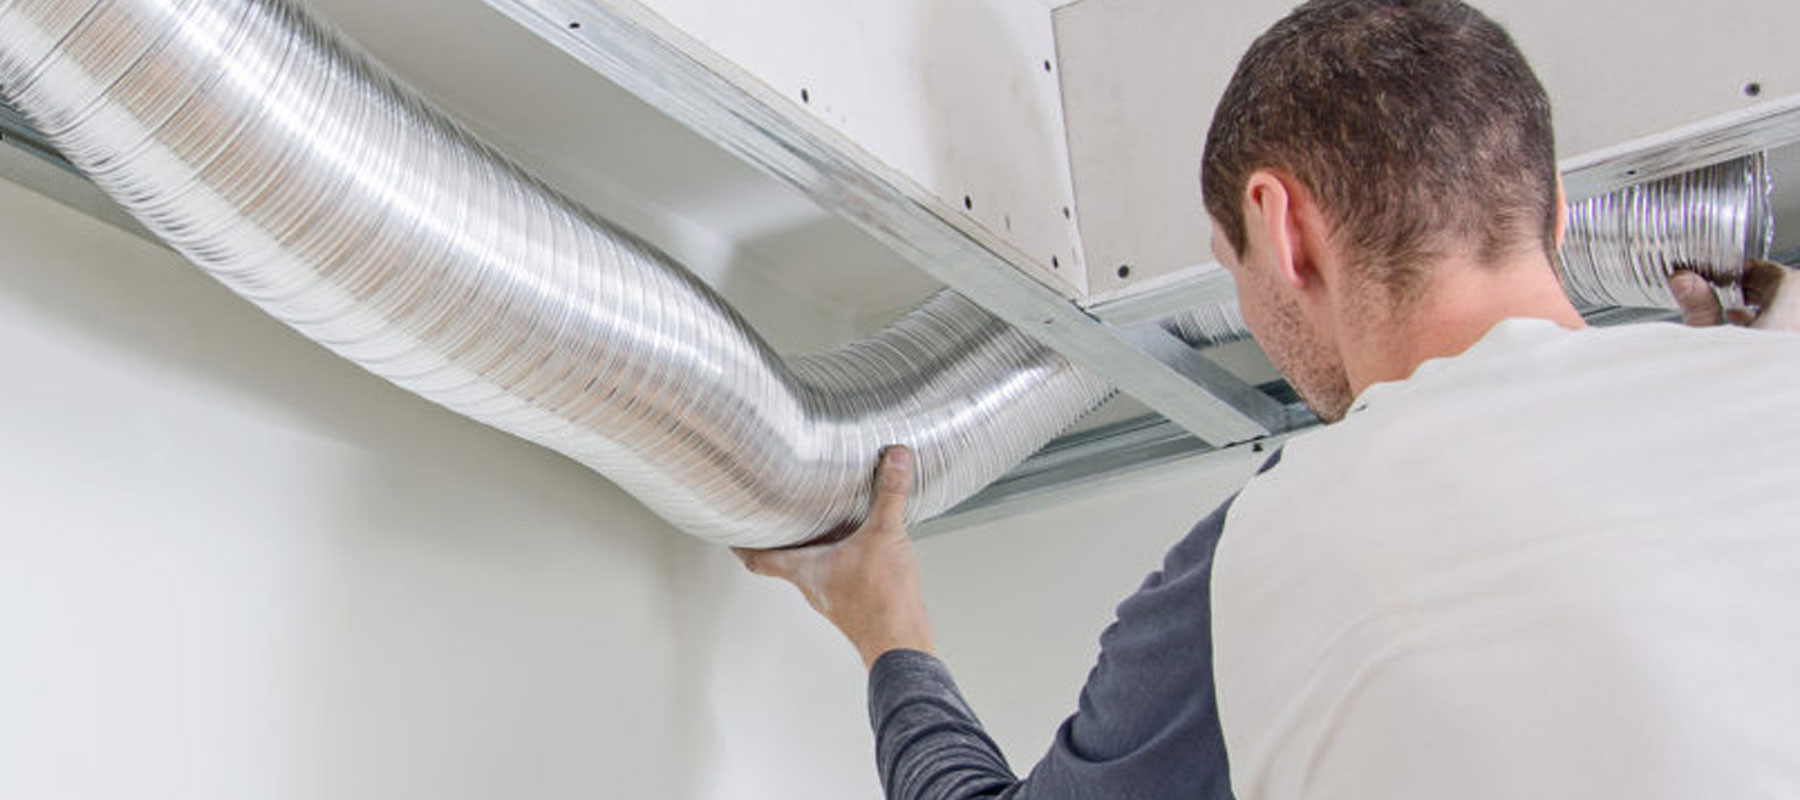 HVAC Duct Installation   Mr Duct Cleaner System